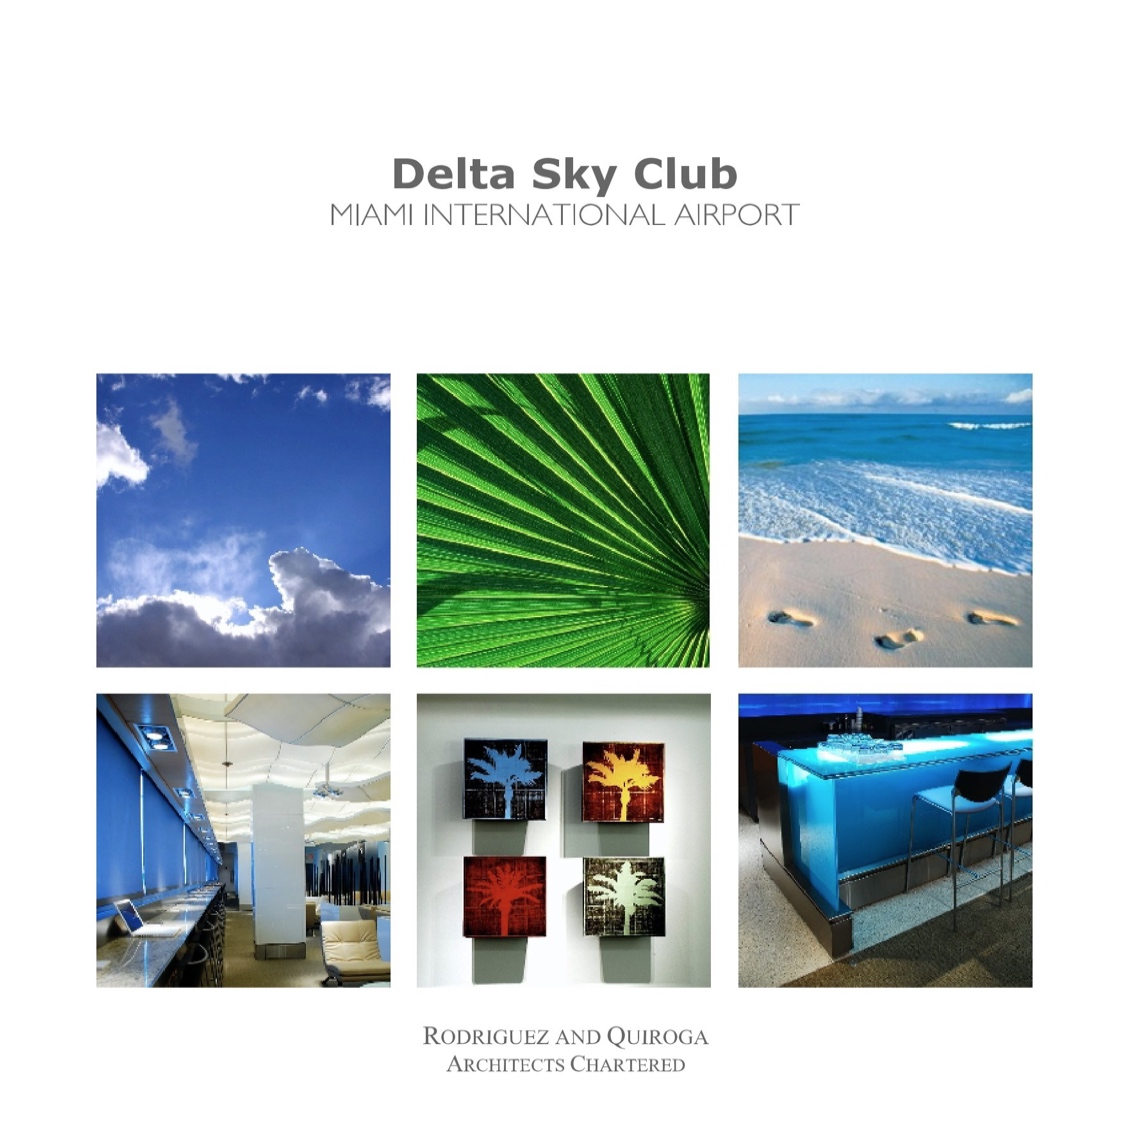 "delta sky club - airline club - inspiration . design . completion12"" x 12"" square format"